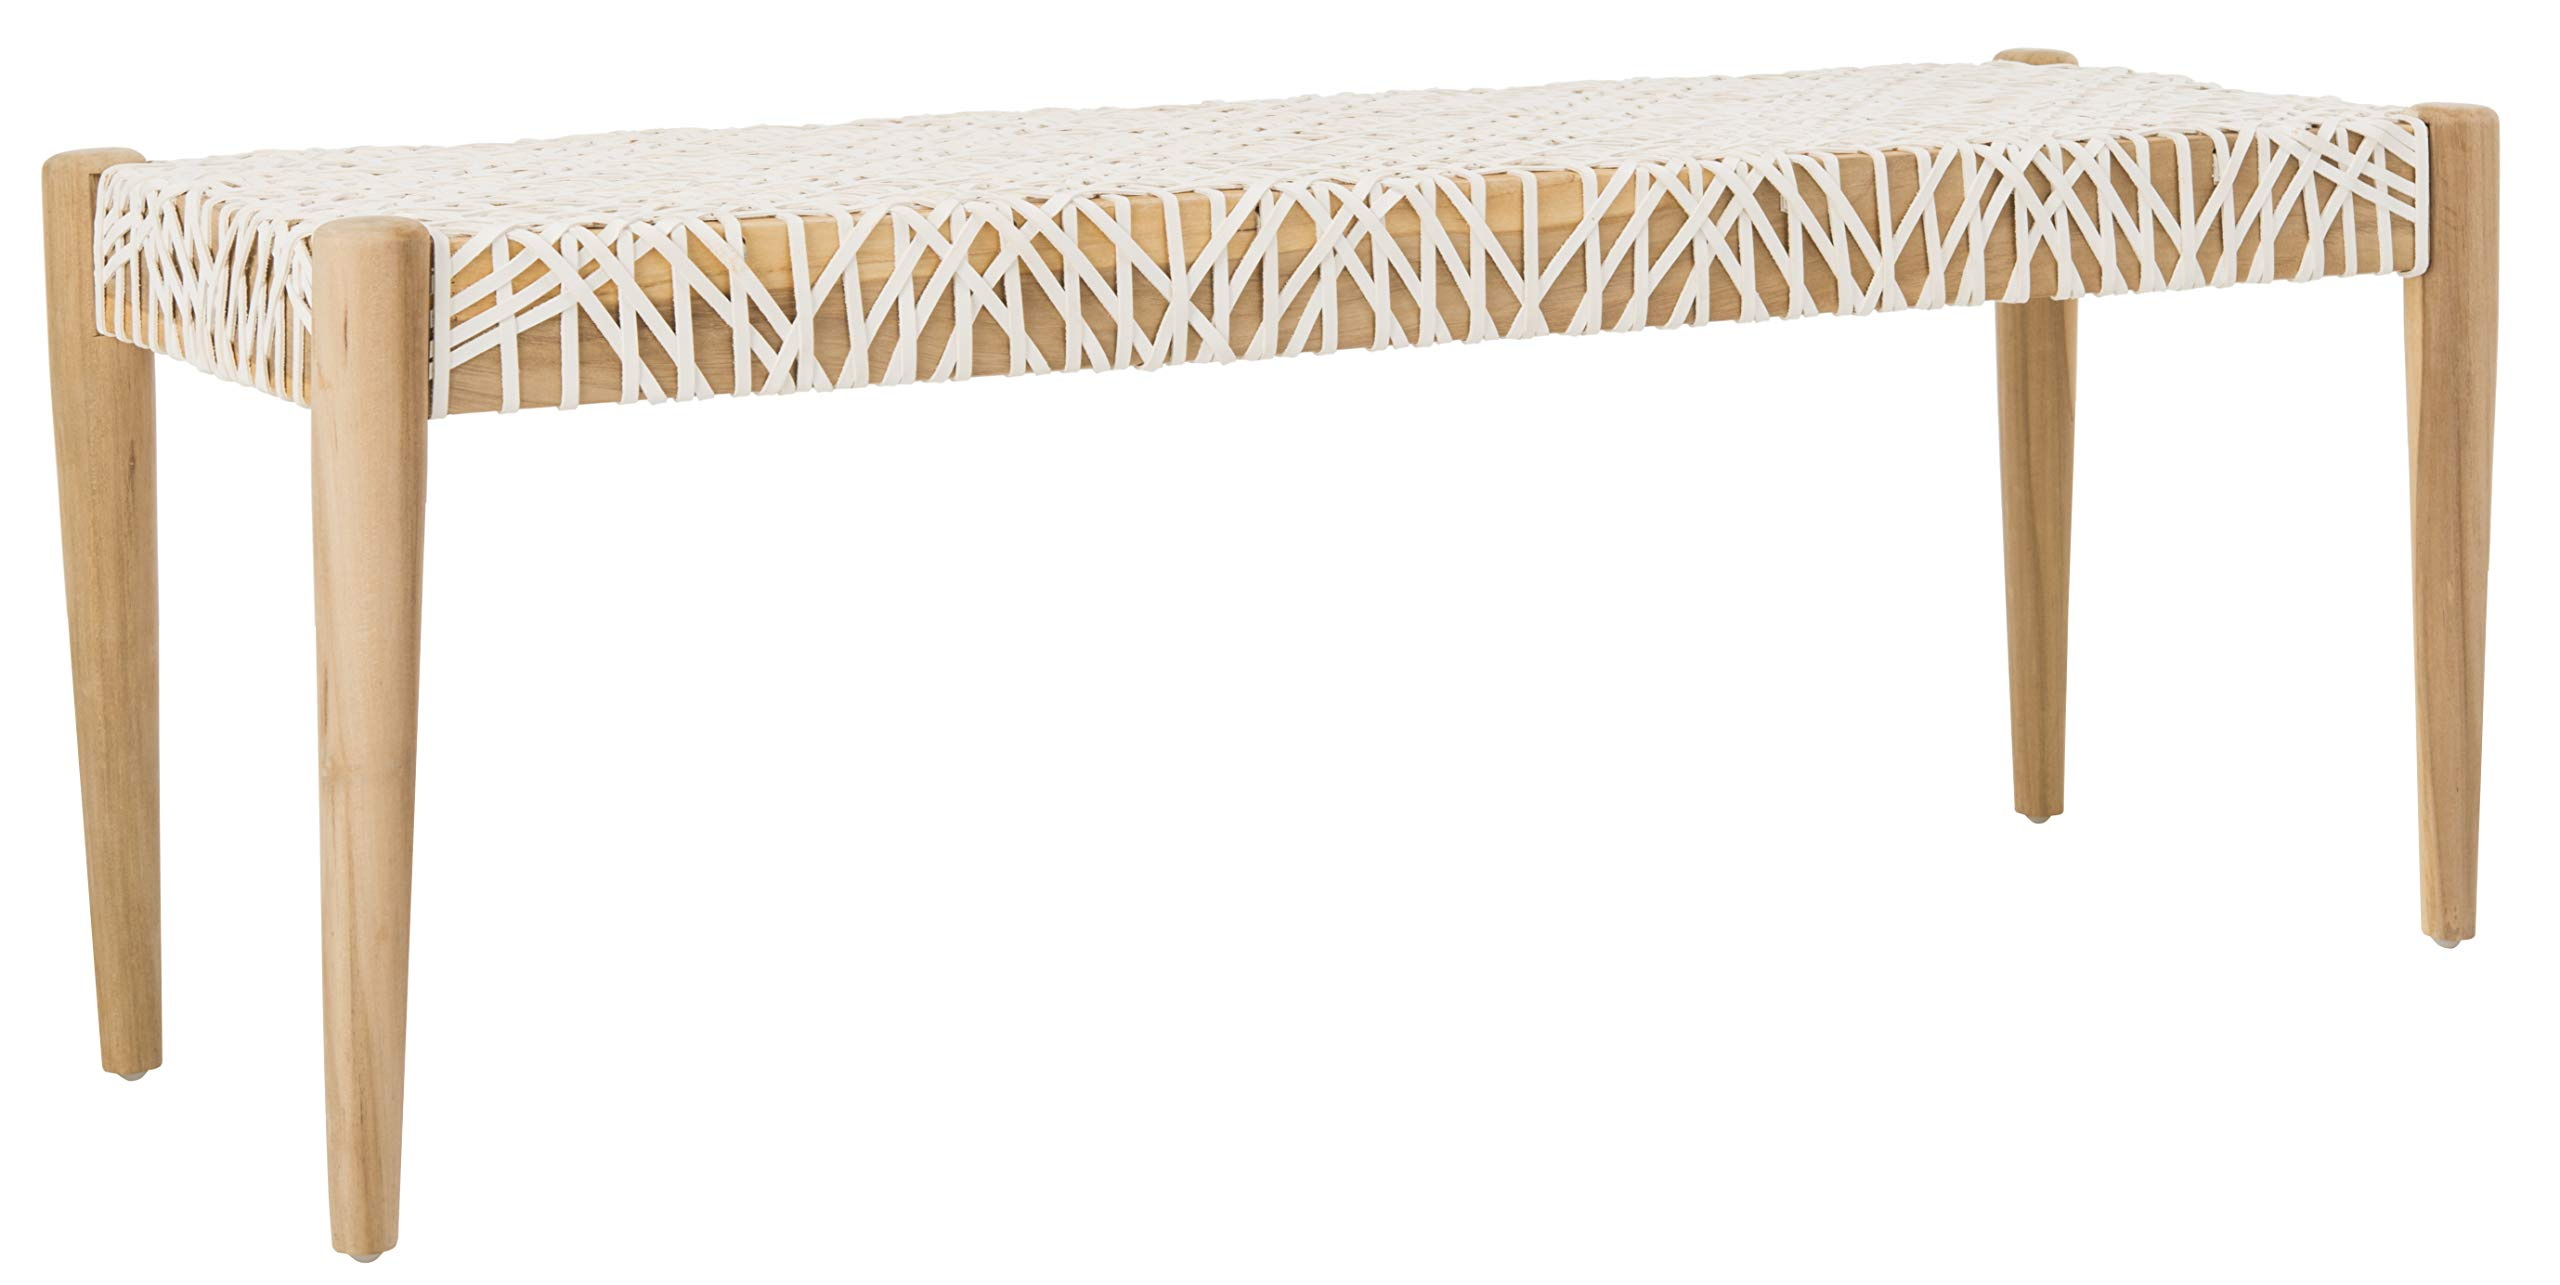 Safavieh BCH1000A Home Collection Bandelier Bench, Off- Off-White/Natural by Safavieh (Image #6)